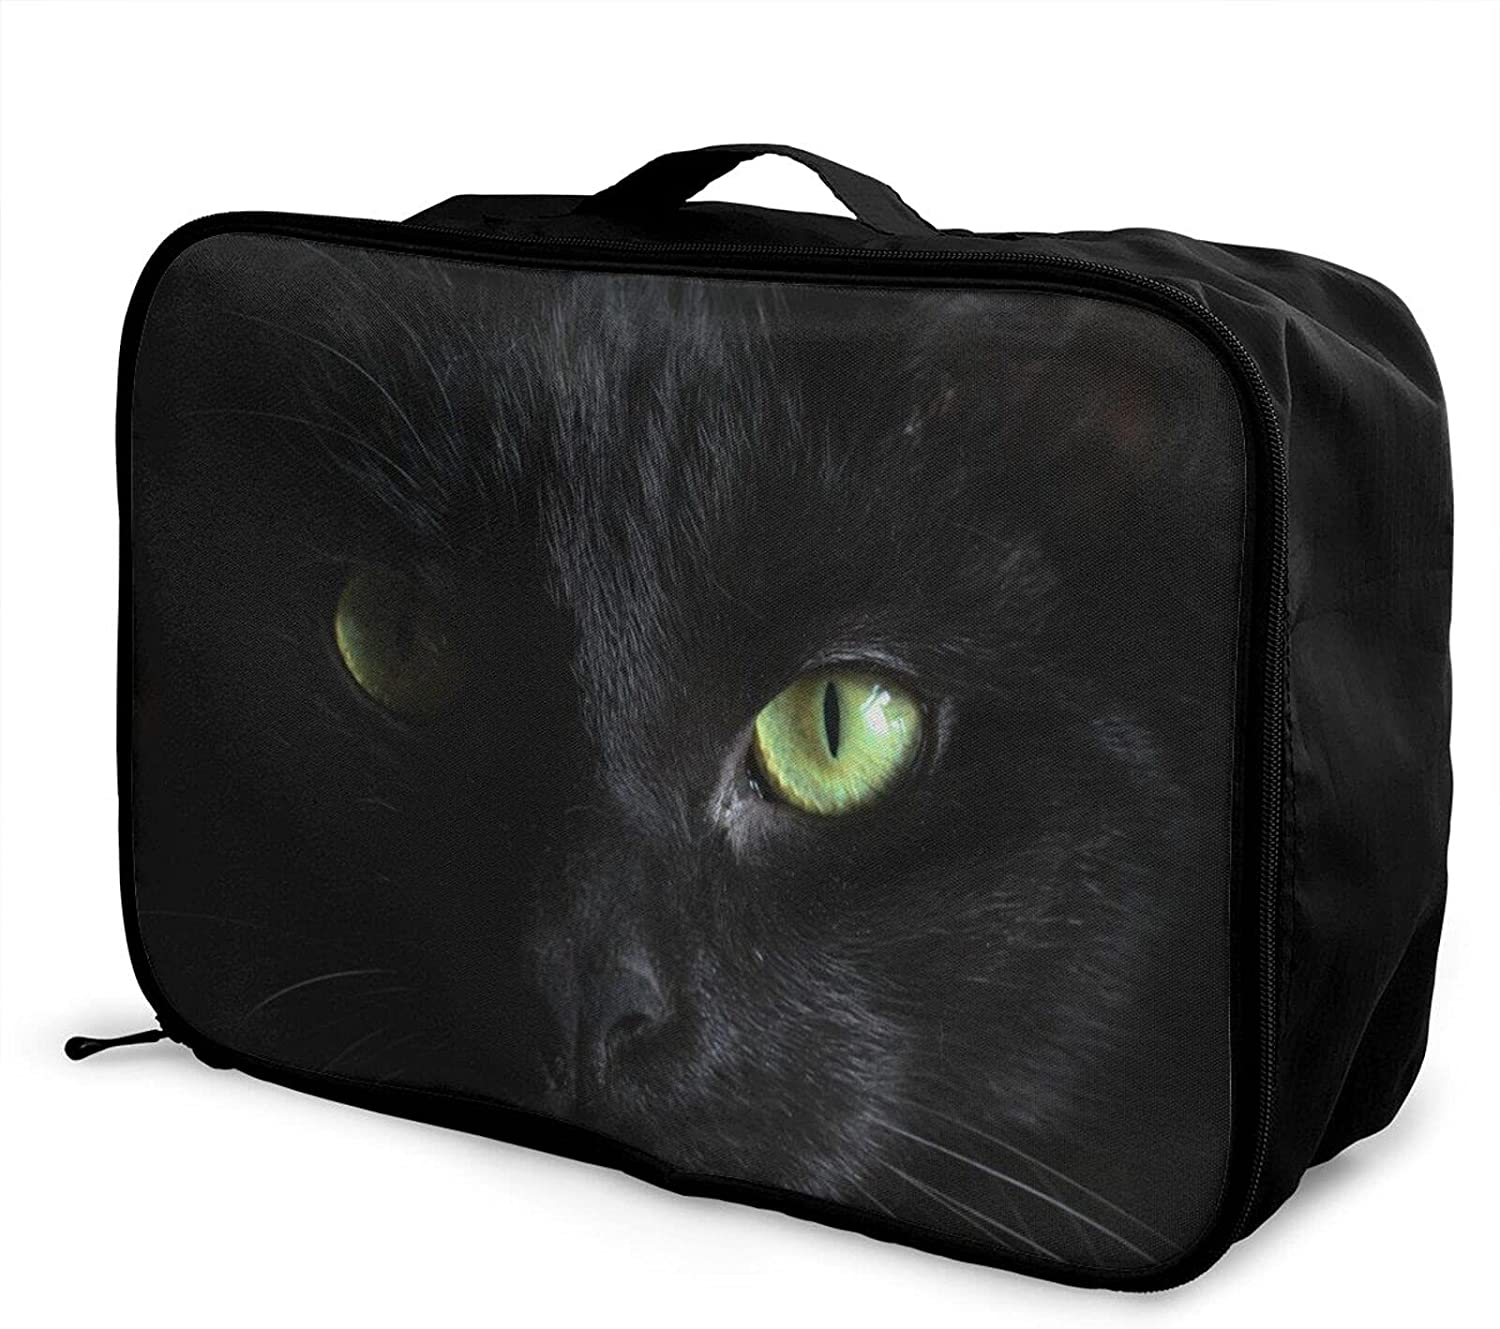 Foldable Travel Sacramento Mall Bag Tote Cat Camouflage D Face Be super welcome Eye Carry-On